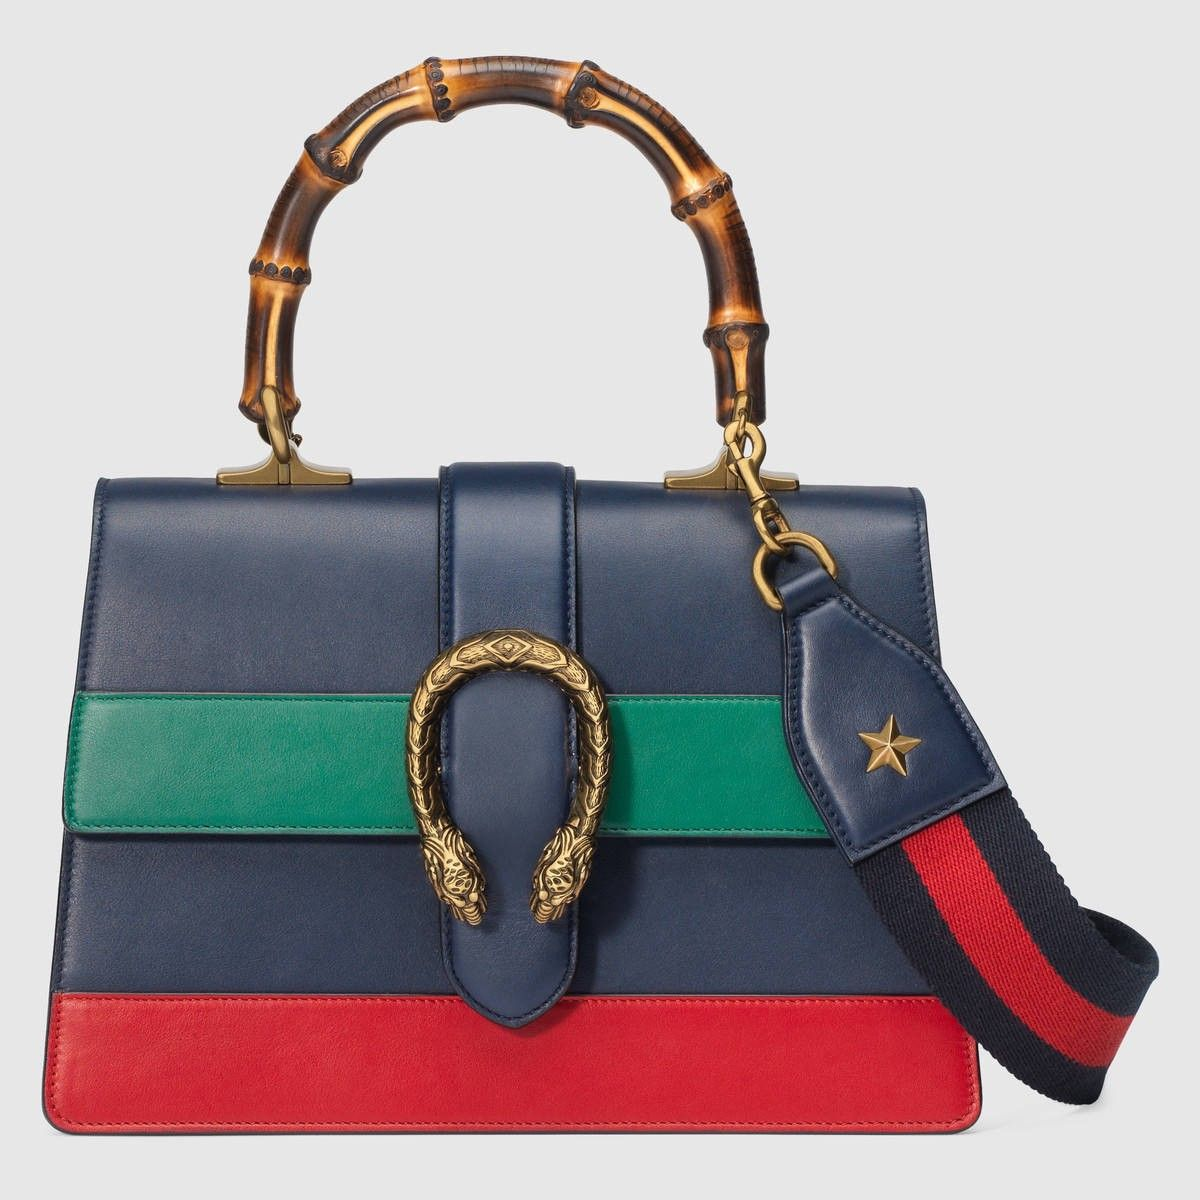 c7ecb20b3af72 GUCCI Dionysus Leather Top Handle Bag - Blue Green Red Leather.  gucci  bags   leather  lining  shoulder bags  linen  hand bags  cotton